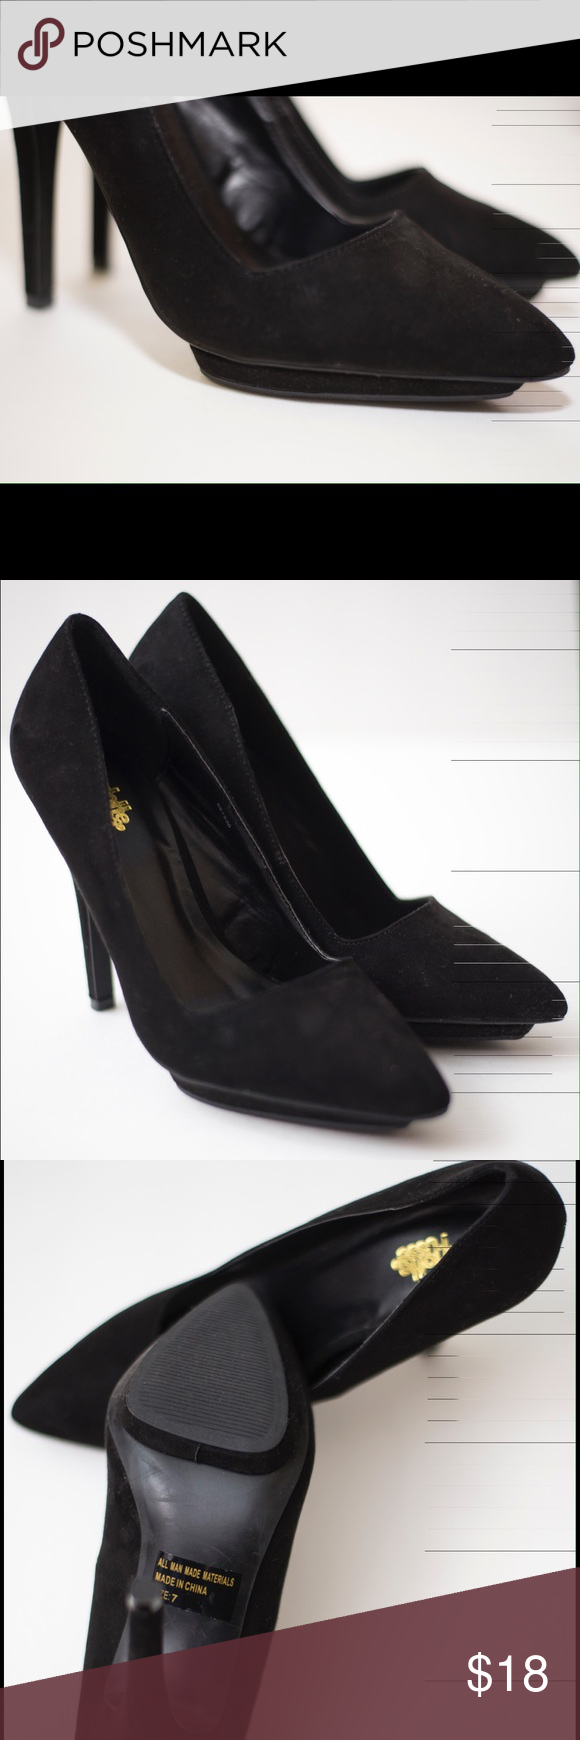 """Suede Double Platform pointed toe Pumps Super trendy double platform pointed toe pumps, faux suede texture 4"""" heel. Fun twist to a classic staple! (worn once indoors.) !!!They fit like a 6.5!!! Charlotte Russe Shoes Heels"""